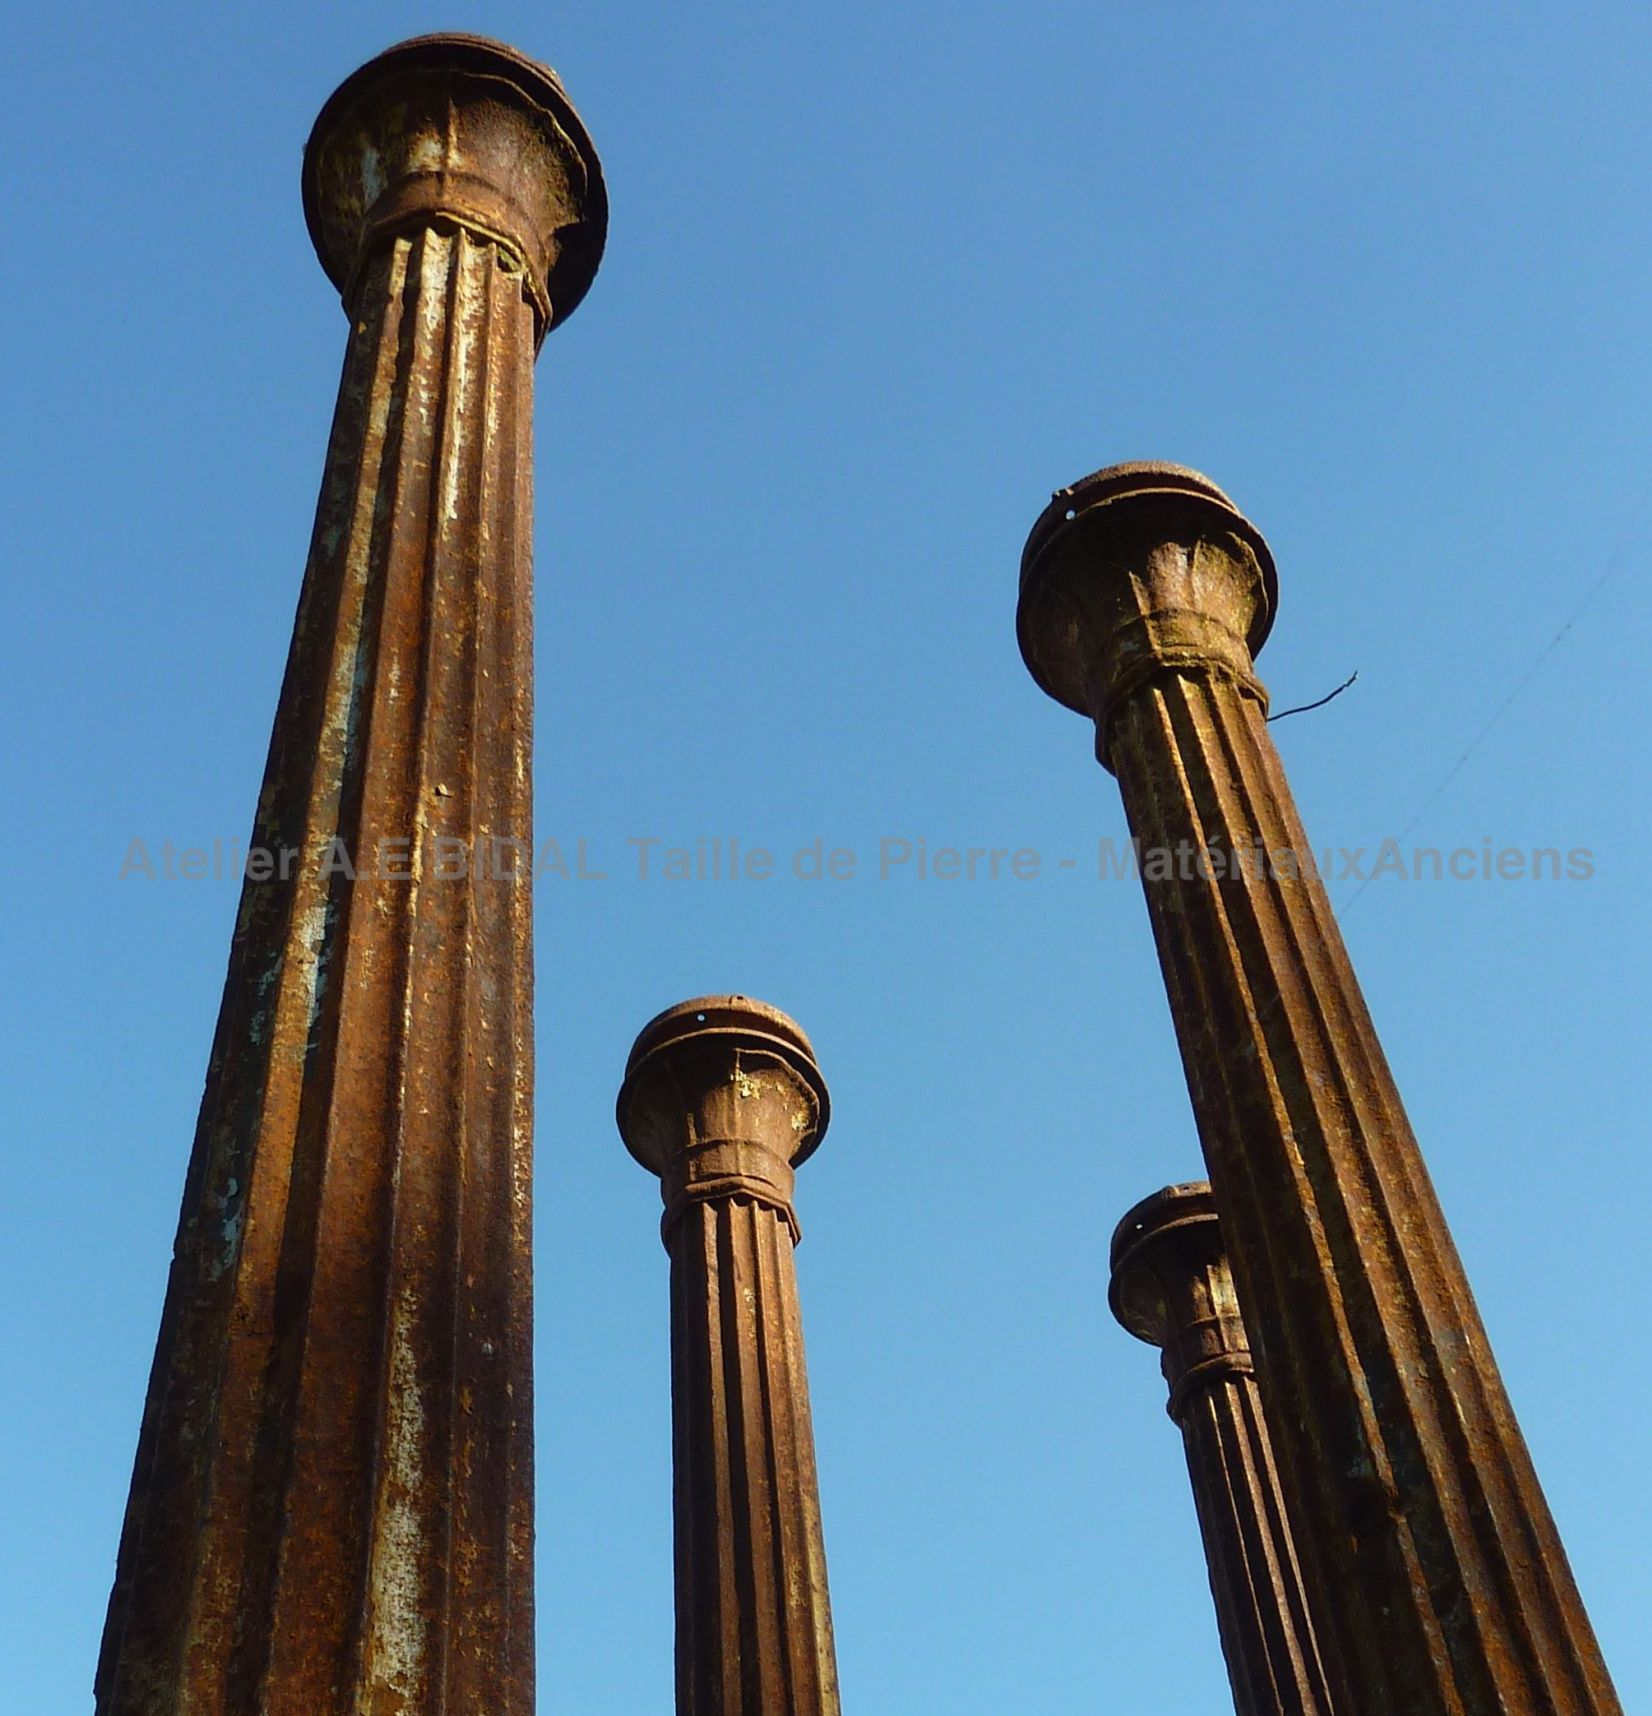 Top of an old pillar - Doric column made of cast iron (5 examples).